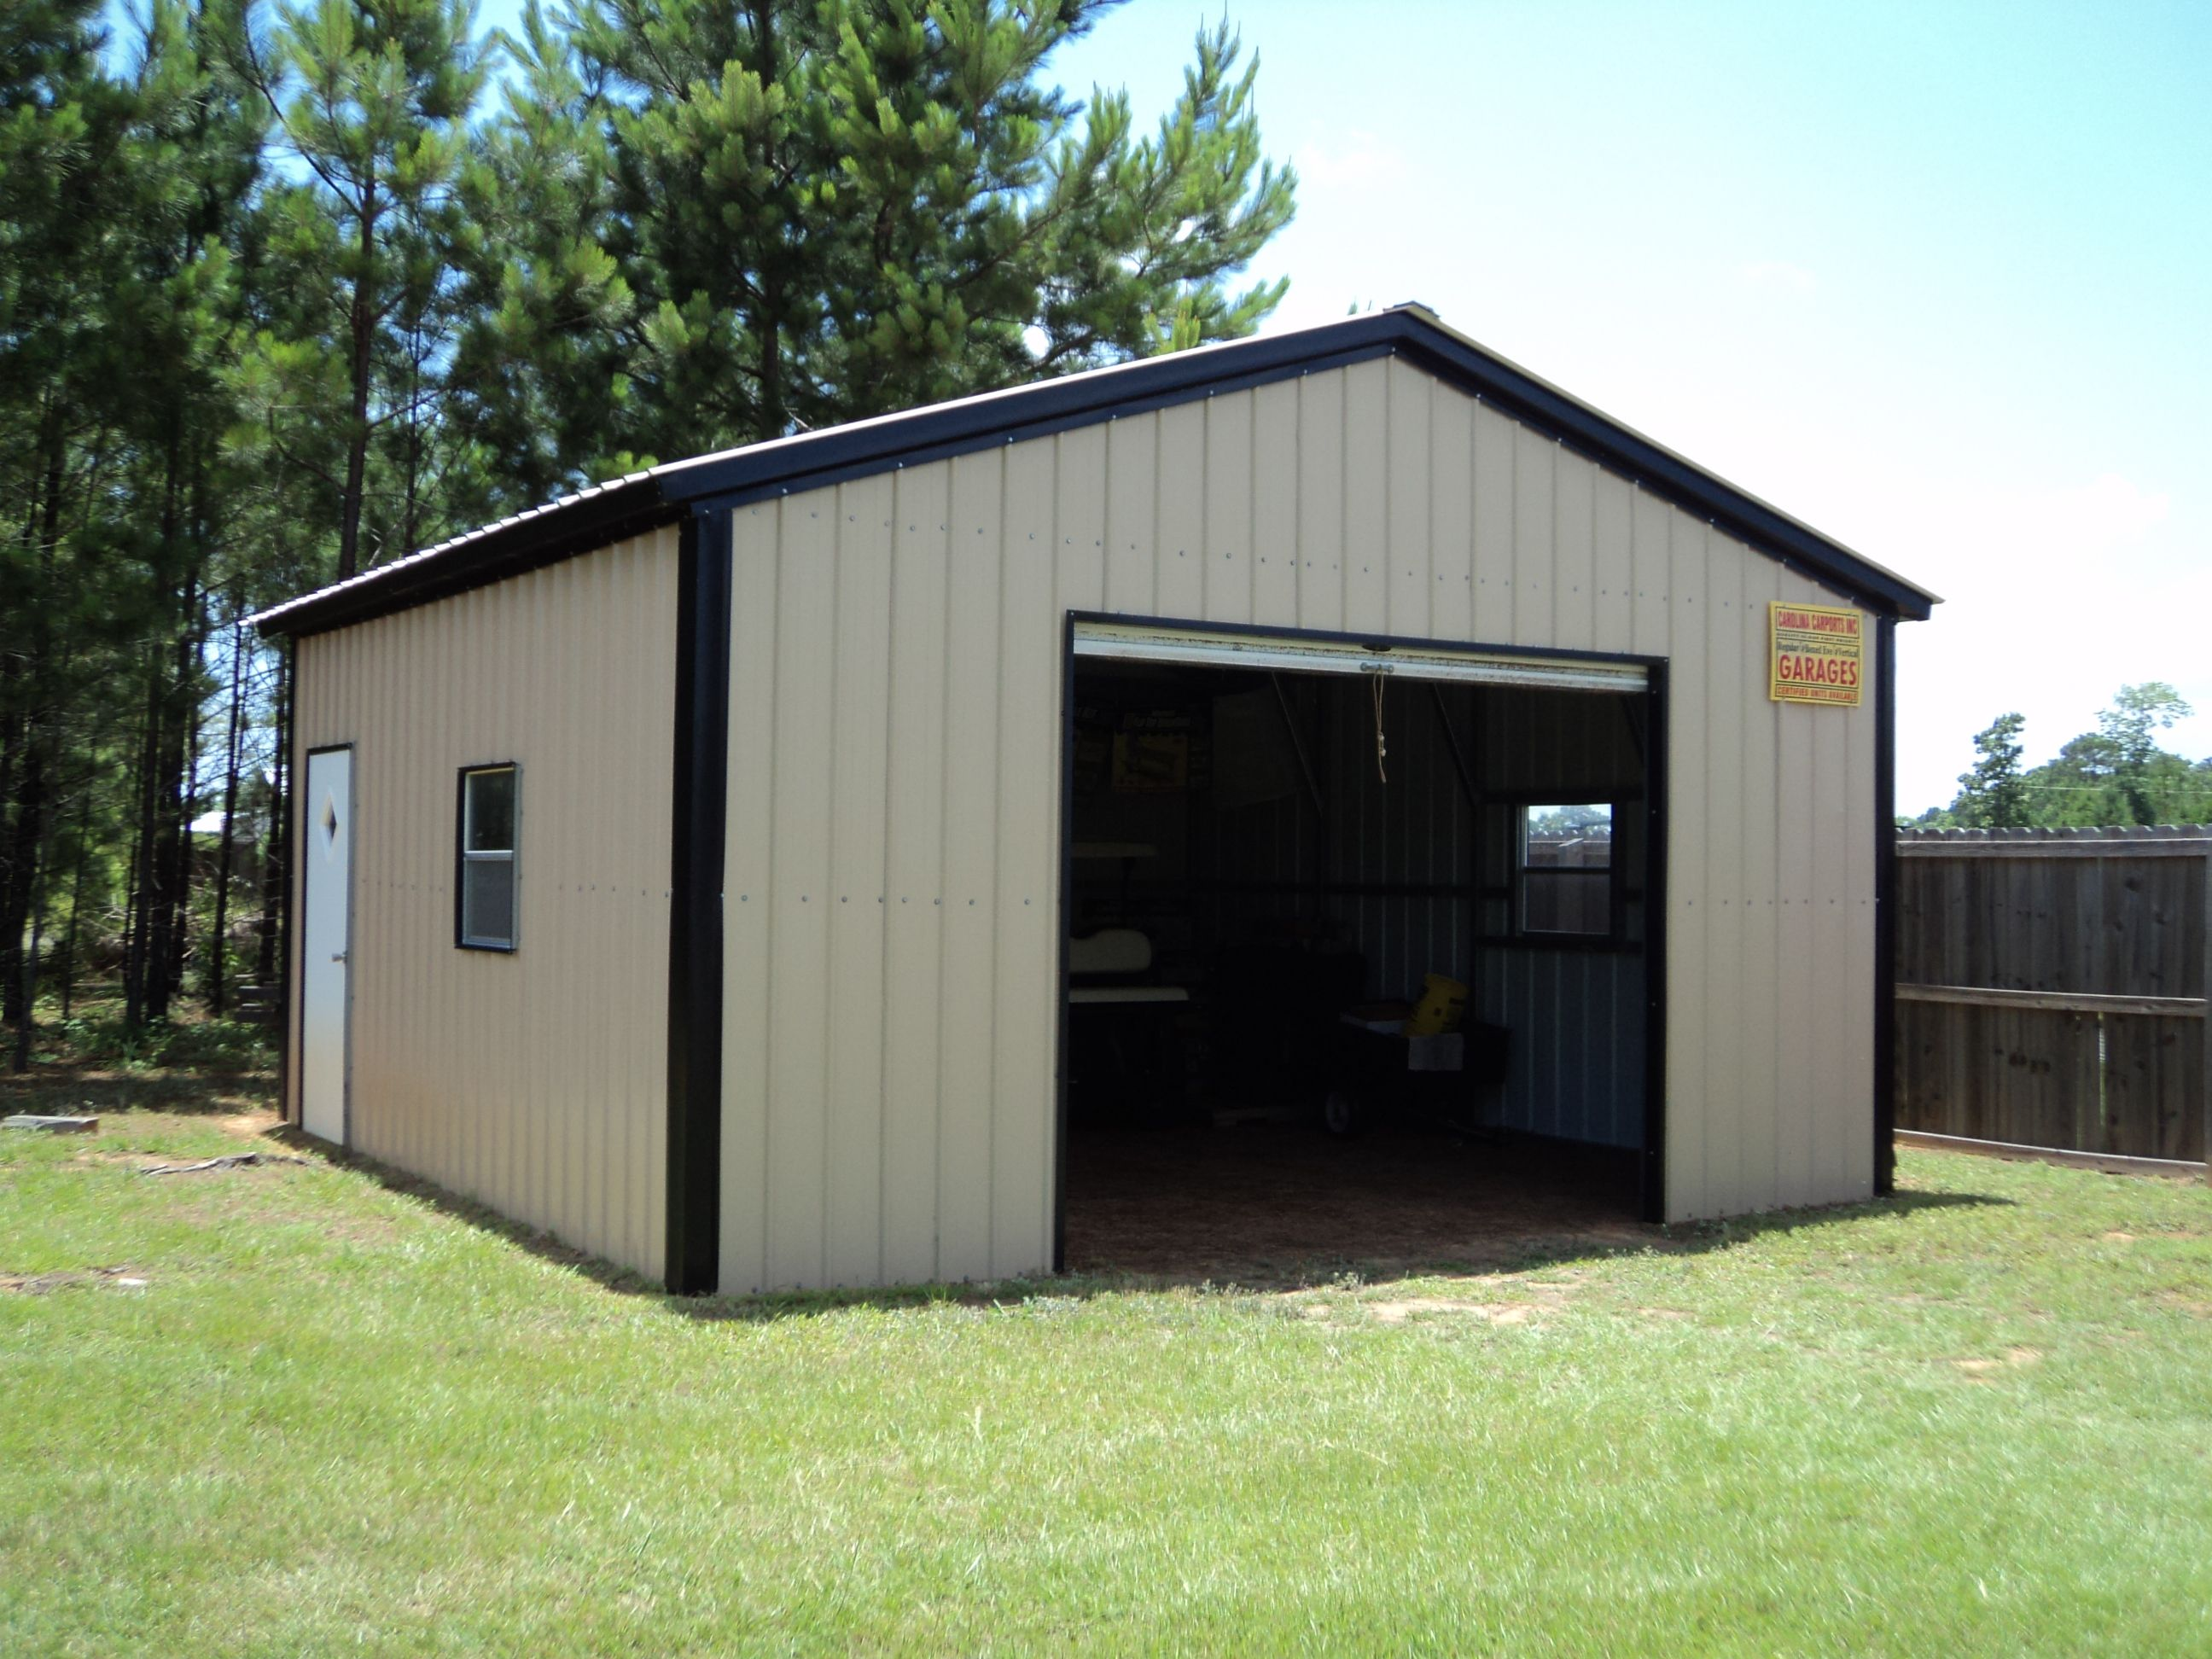 18 x 21 x 9 all vertical garage choice metal buildings for Garage built homes